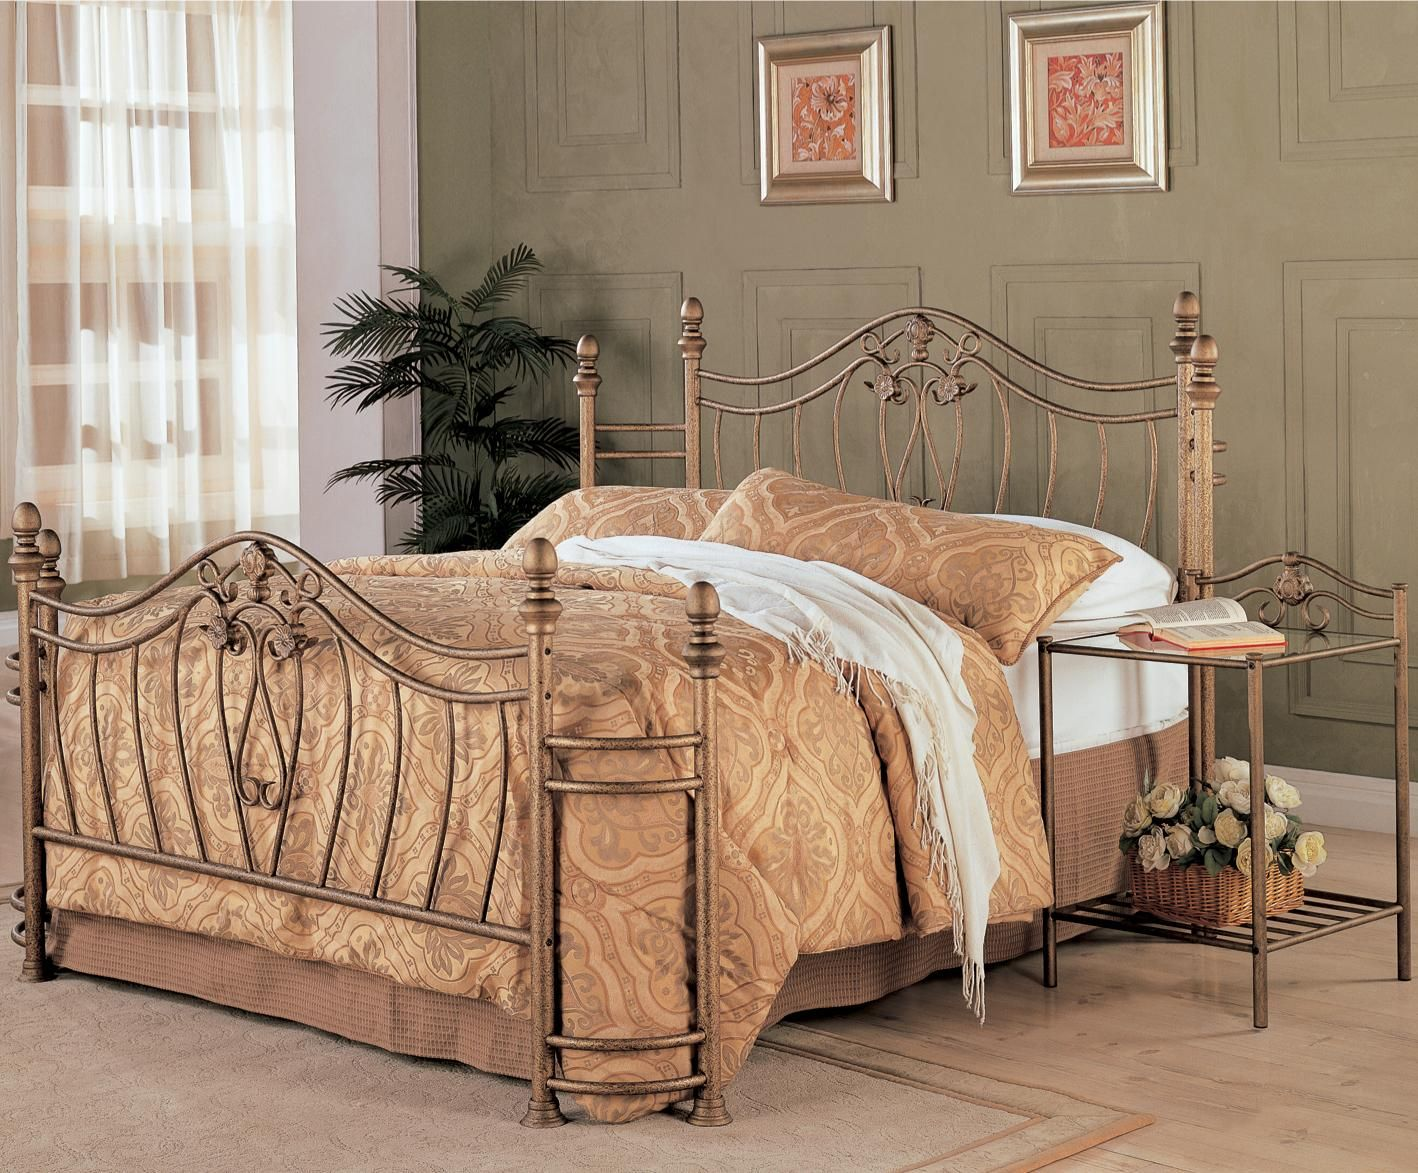 Sydney Queen Bedroom Group by Coaster Headboards for